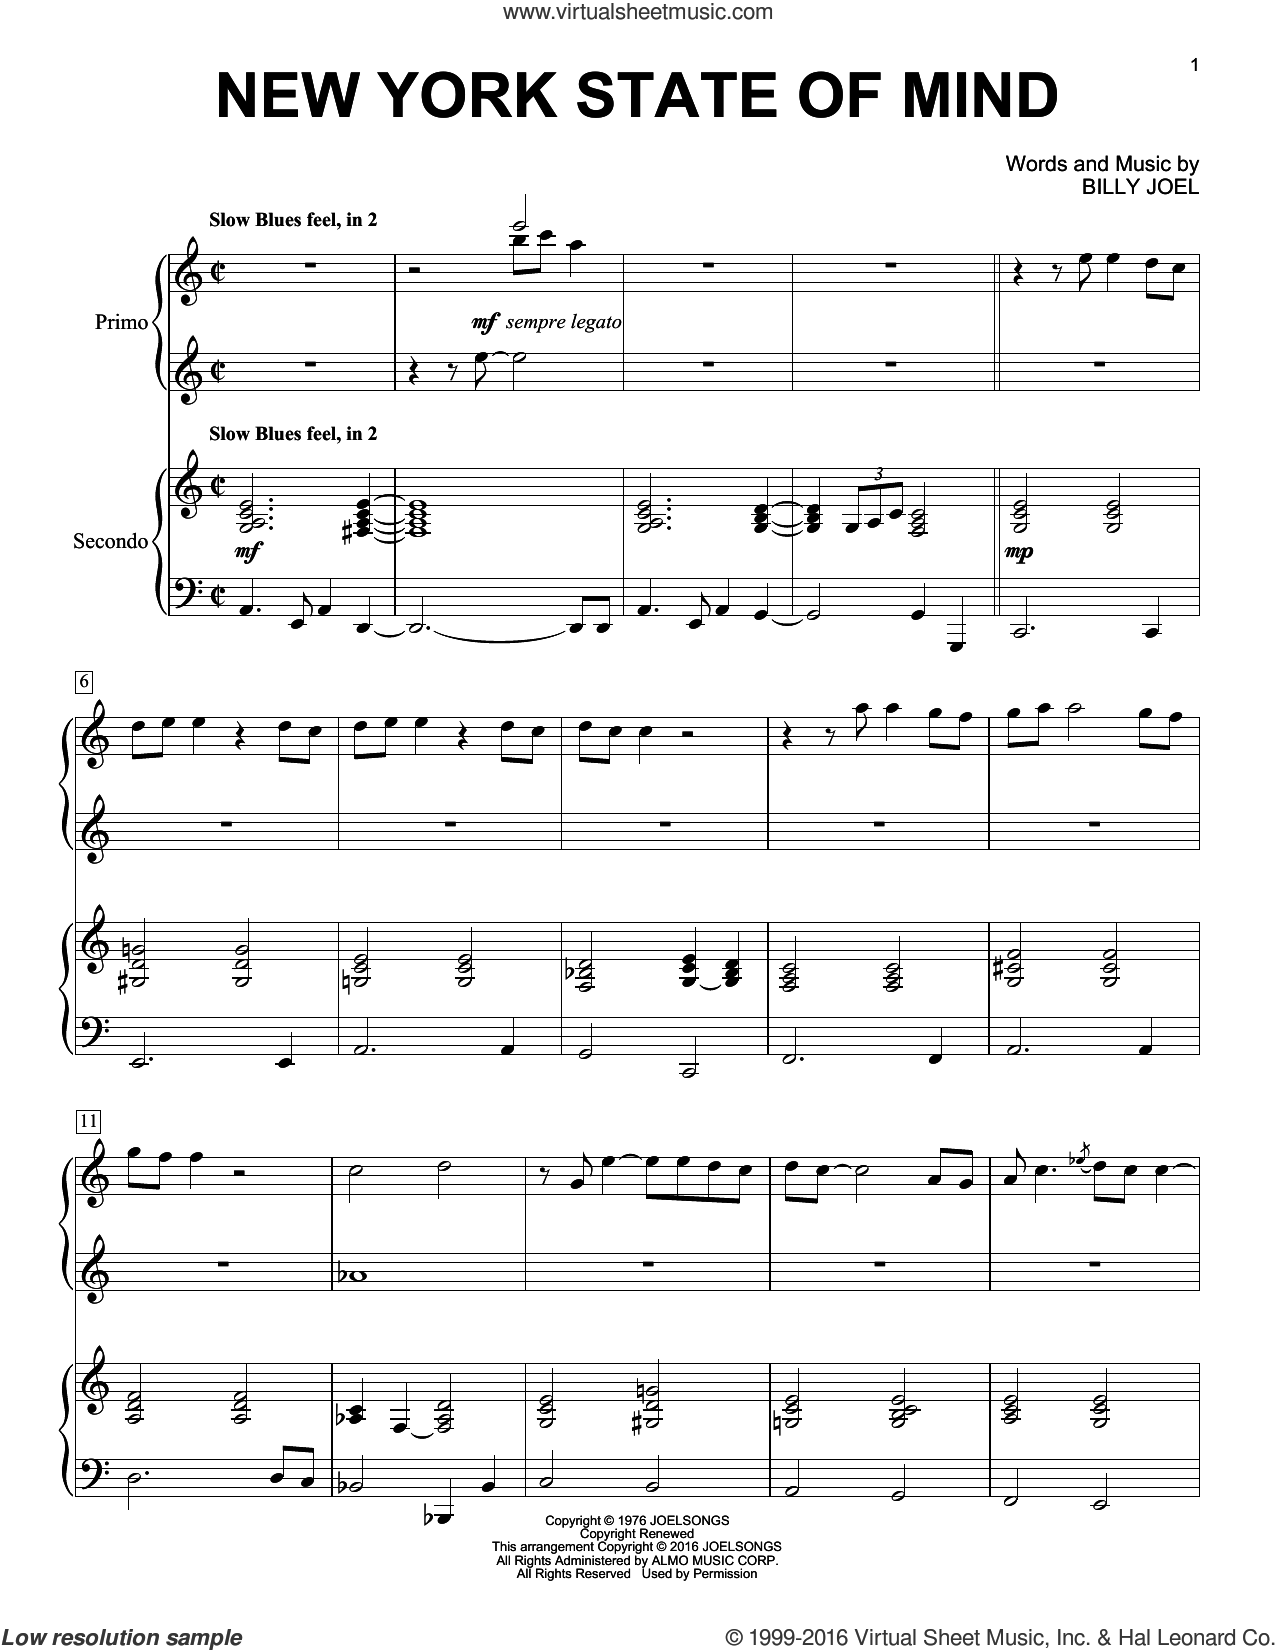 New York State Of Mind sheet music for piano four hands (duets) by Billy Joel, intermediate. Score Image Preview.